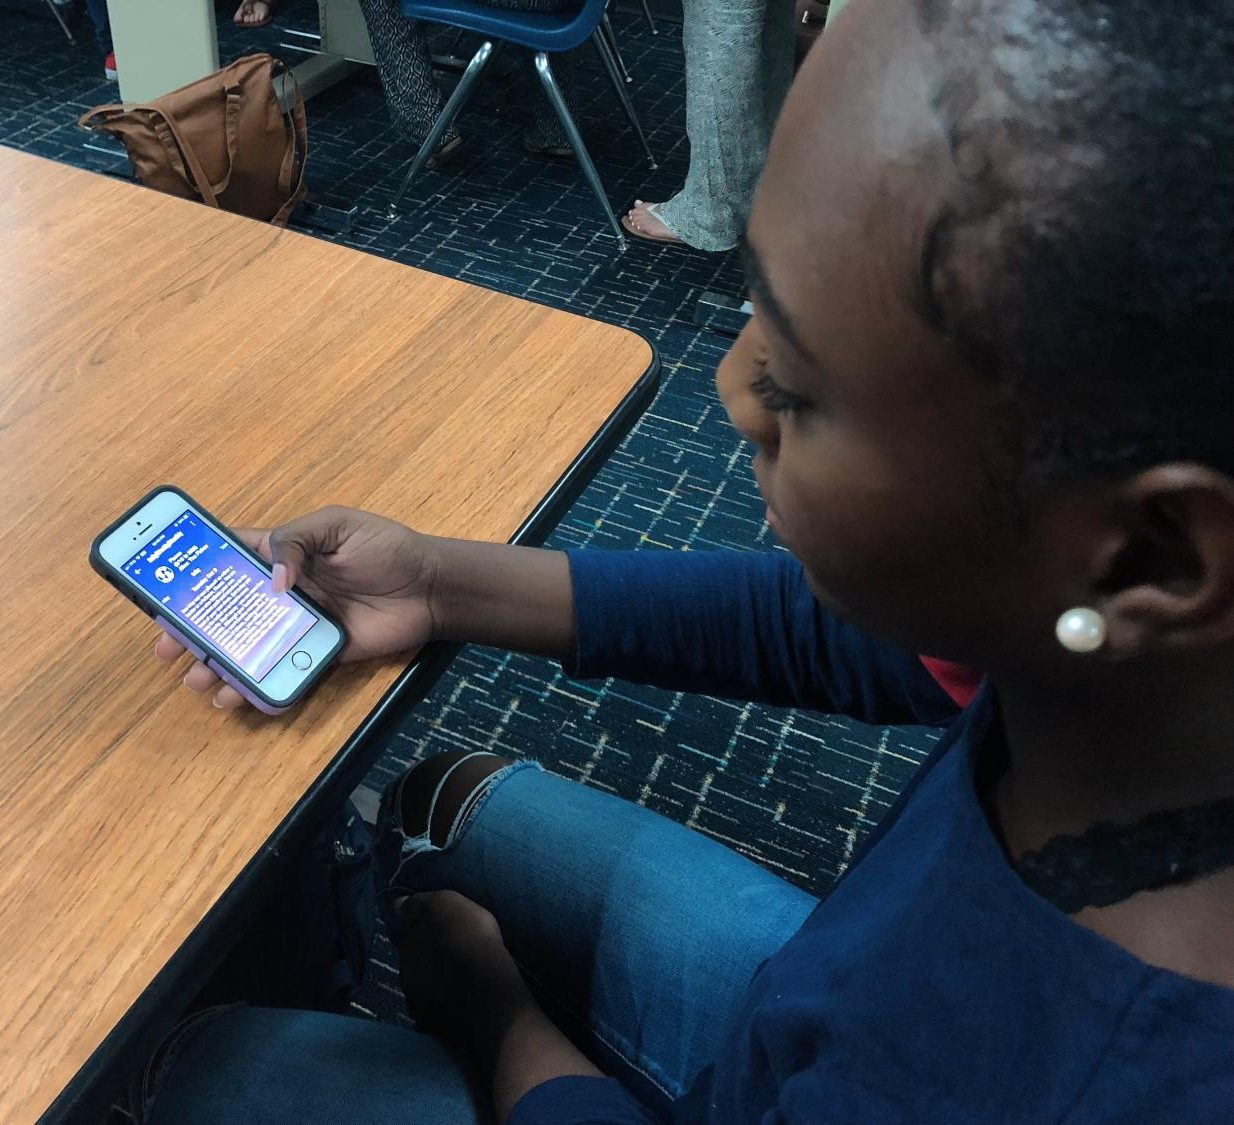 Junior Jaelese Peavy reads through dailly horoscope app during her free period on Oct. 10.